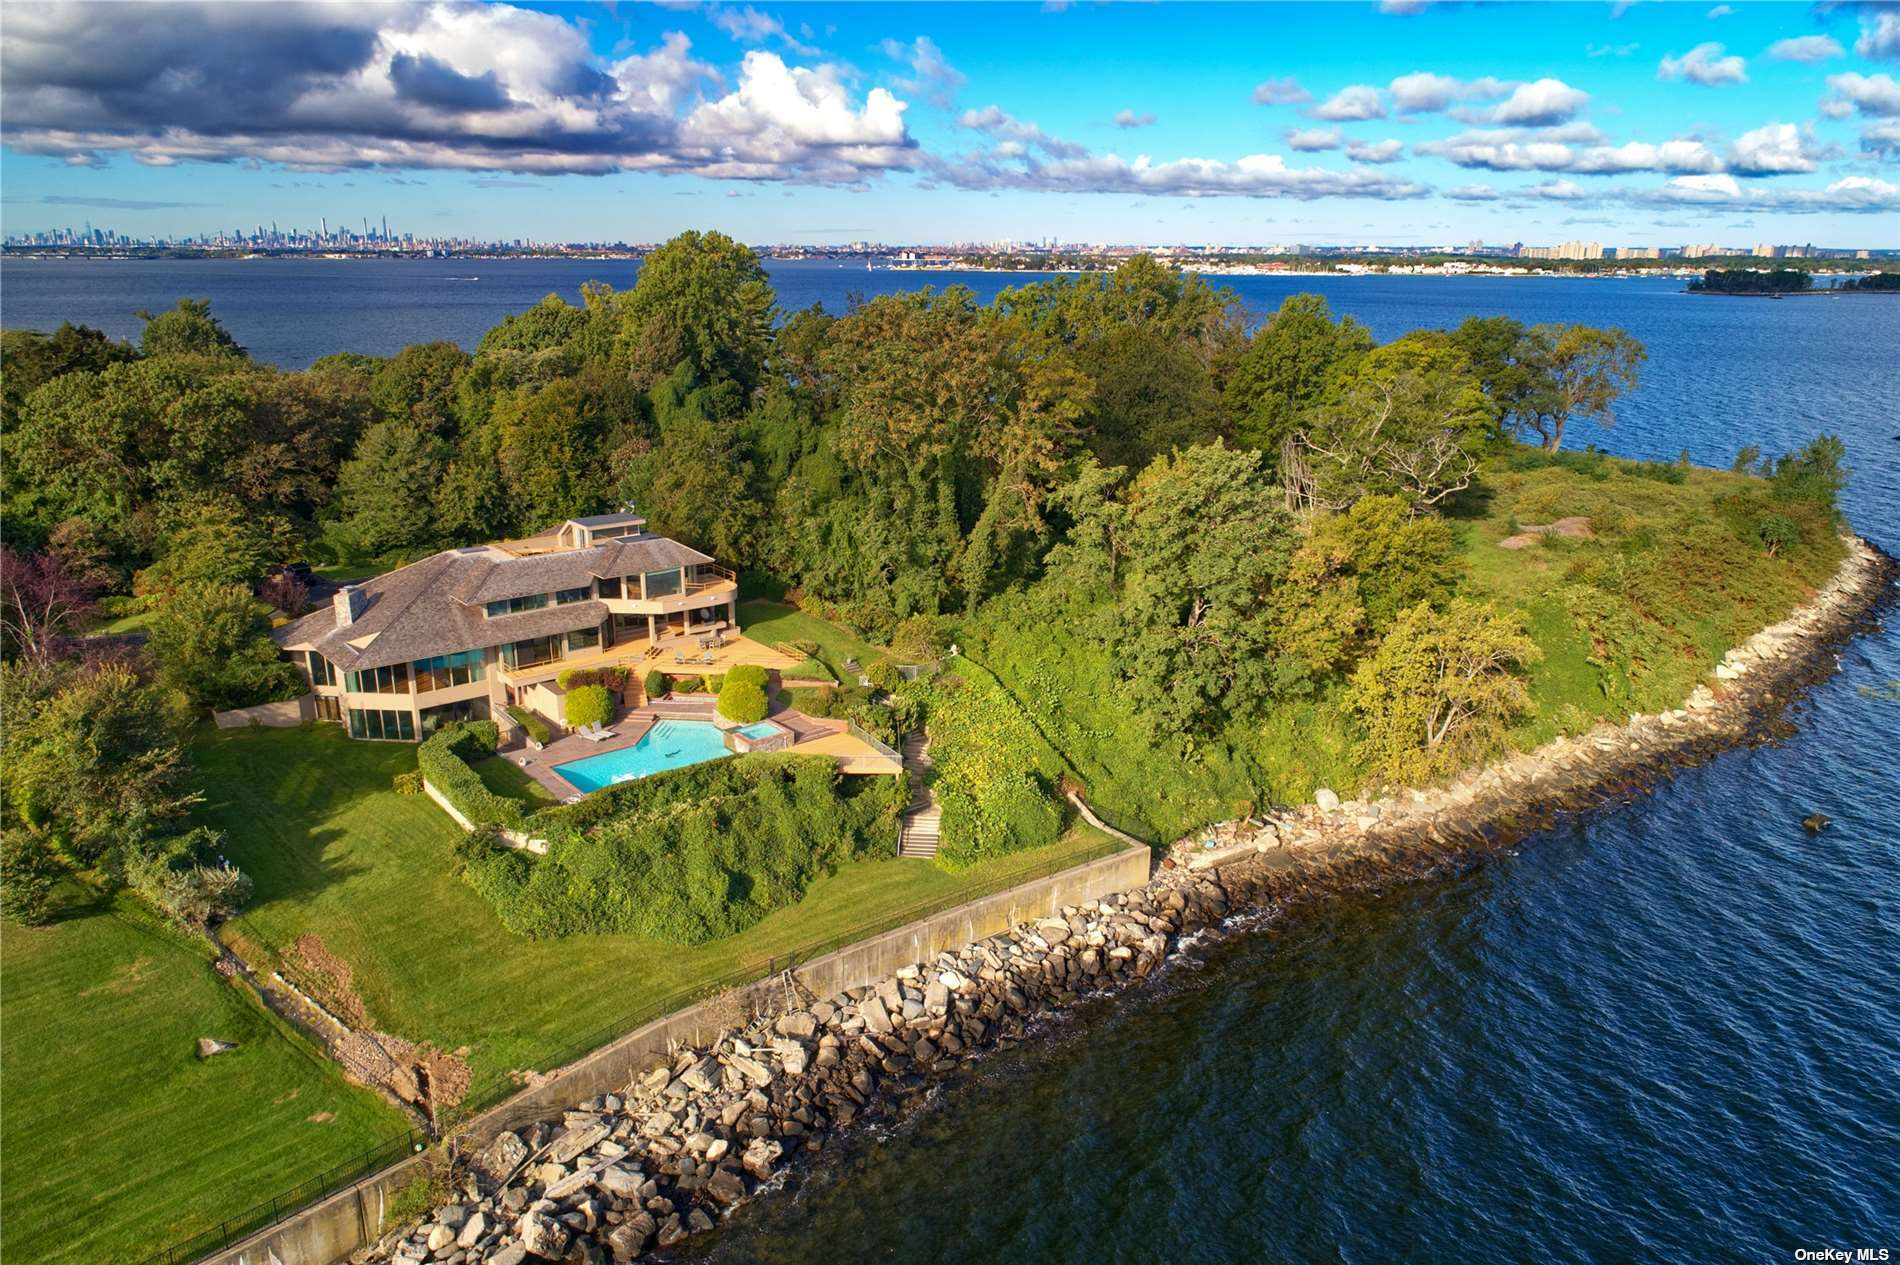 This Architectural Contemporary Masterpiece in the Prestigious Enclave of Kings Point is Set on Over 1 Acre of Waterfront Property on One of the Most Famous and Sought After Address on the Gold Coast of Long Island, Gatsby Lane. Built for Entertainment, the Home Features Exquisite and Expansive Waterfront Views With Floor to Ceiling Windows, Multiple Balconies, In Ground Heated Pool, Game Room, Gym and Many Gathering Areas Throughout the Home and Property. The Primary Bedroom Has Separate Sleeping and Dressing/Sitting Area With Two Full Baths As Well As a Private Balcony and Access to a Private Roof Top Deck Under the Stars. Relax or Entertain Poolside While Capturing the Spectacular and Expansive Breathtaking Water Views of the Long Island Sound.